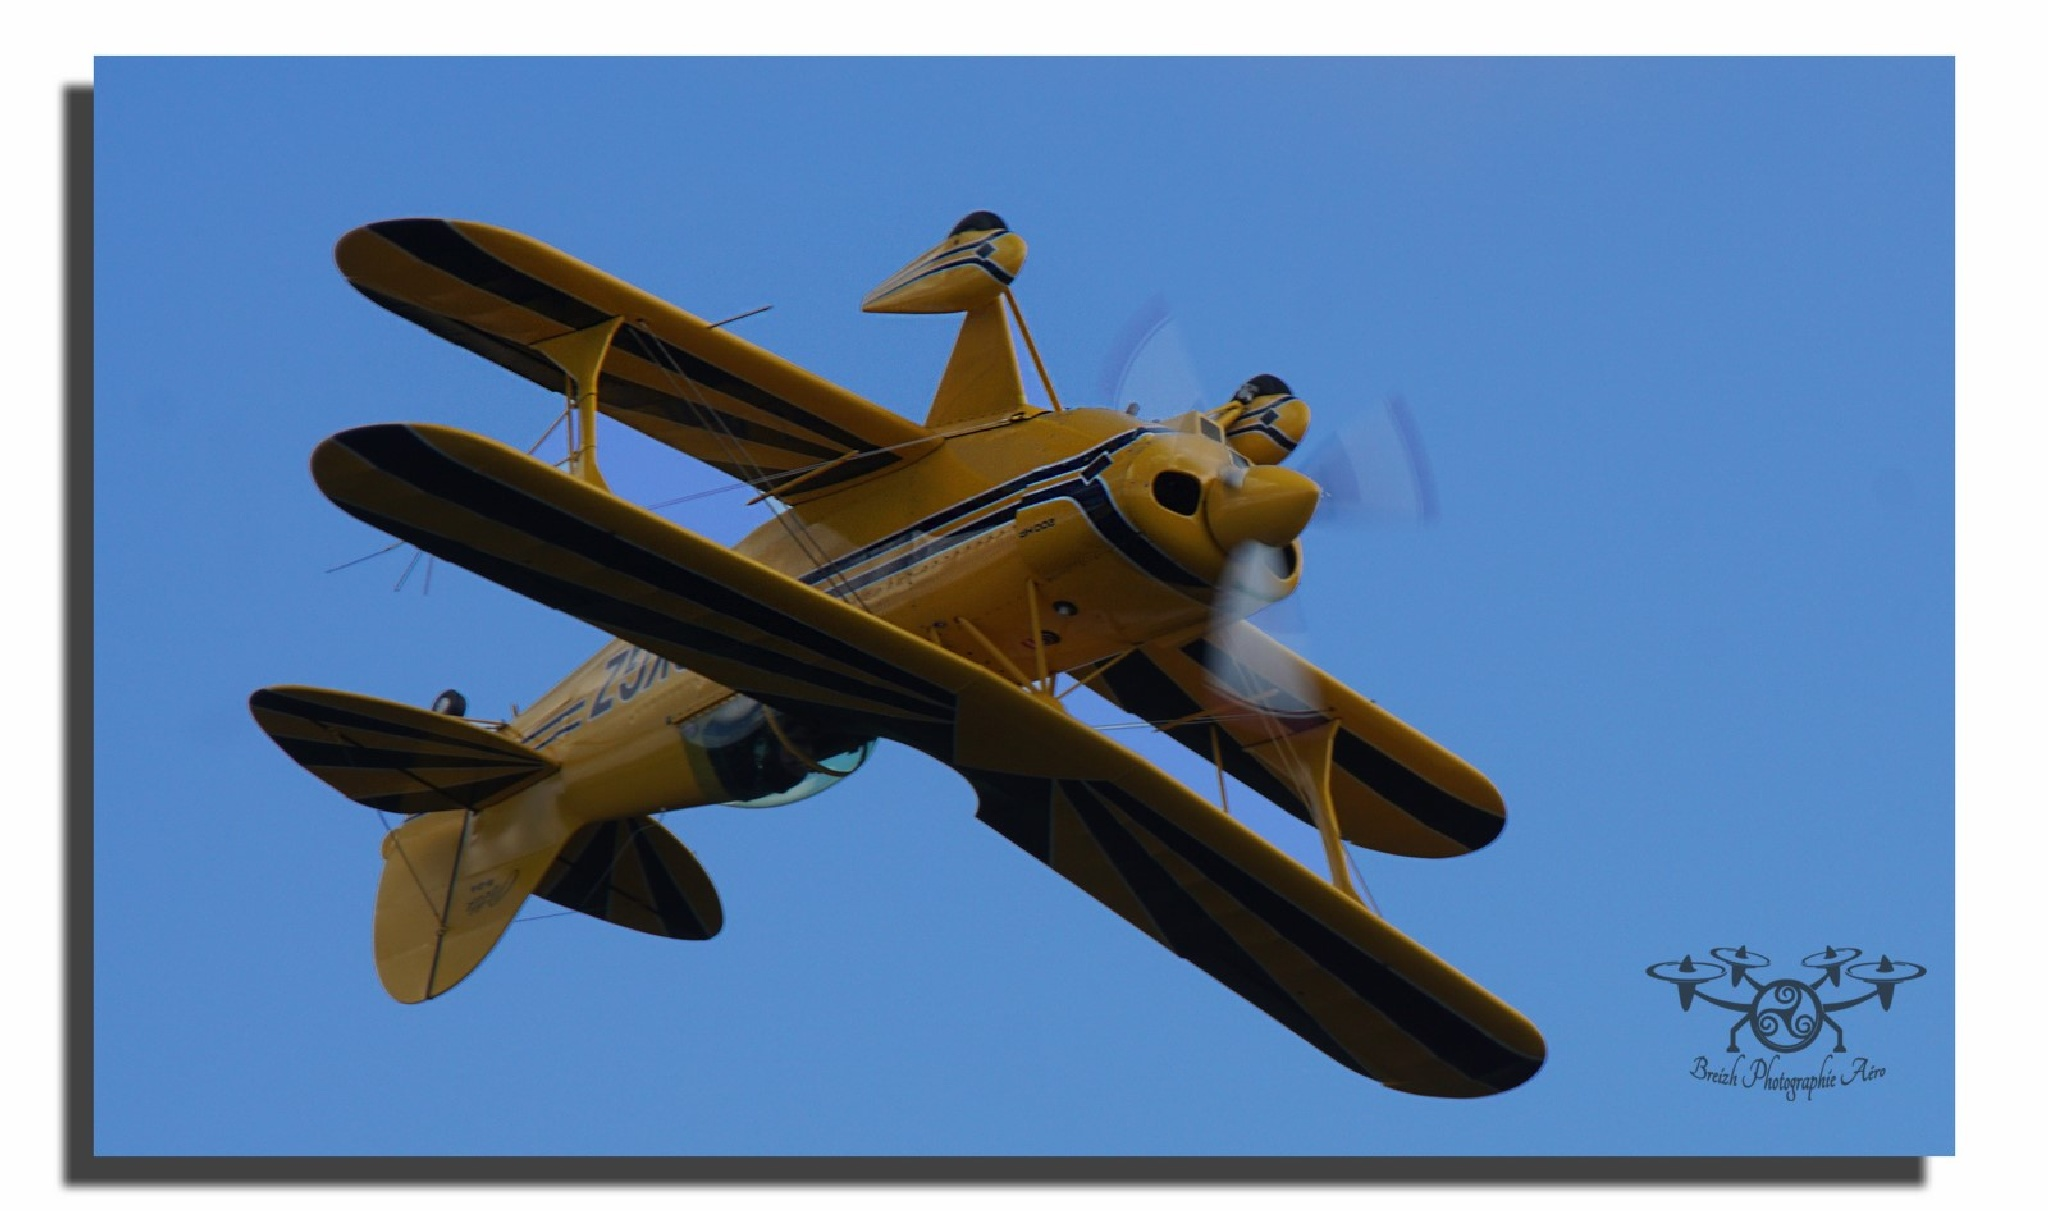 Pitts S-2A by David.R.Photography